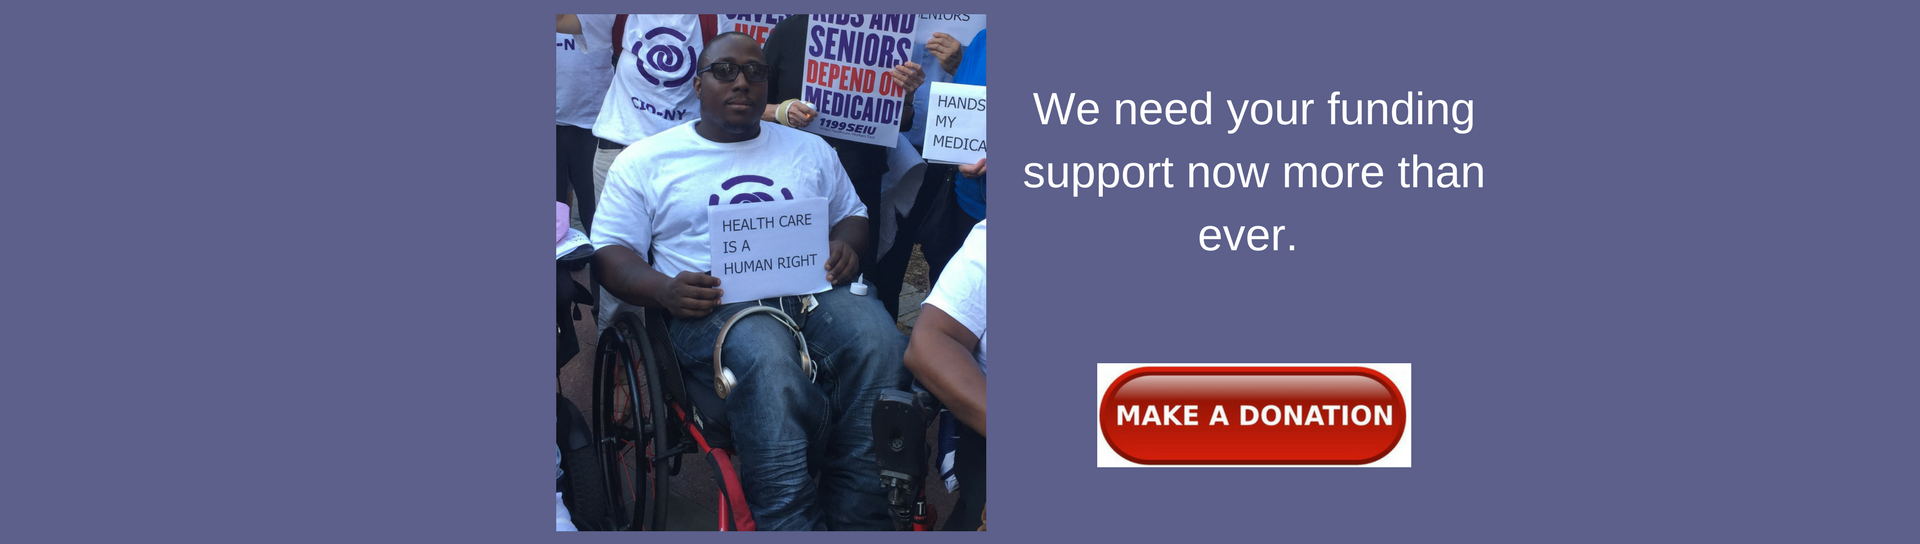 Image of Dustin, a wheelchair user, with sign saying